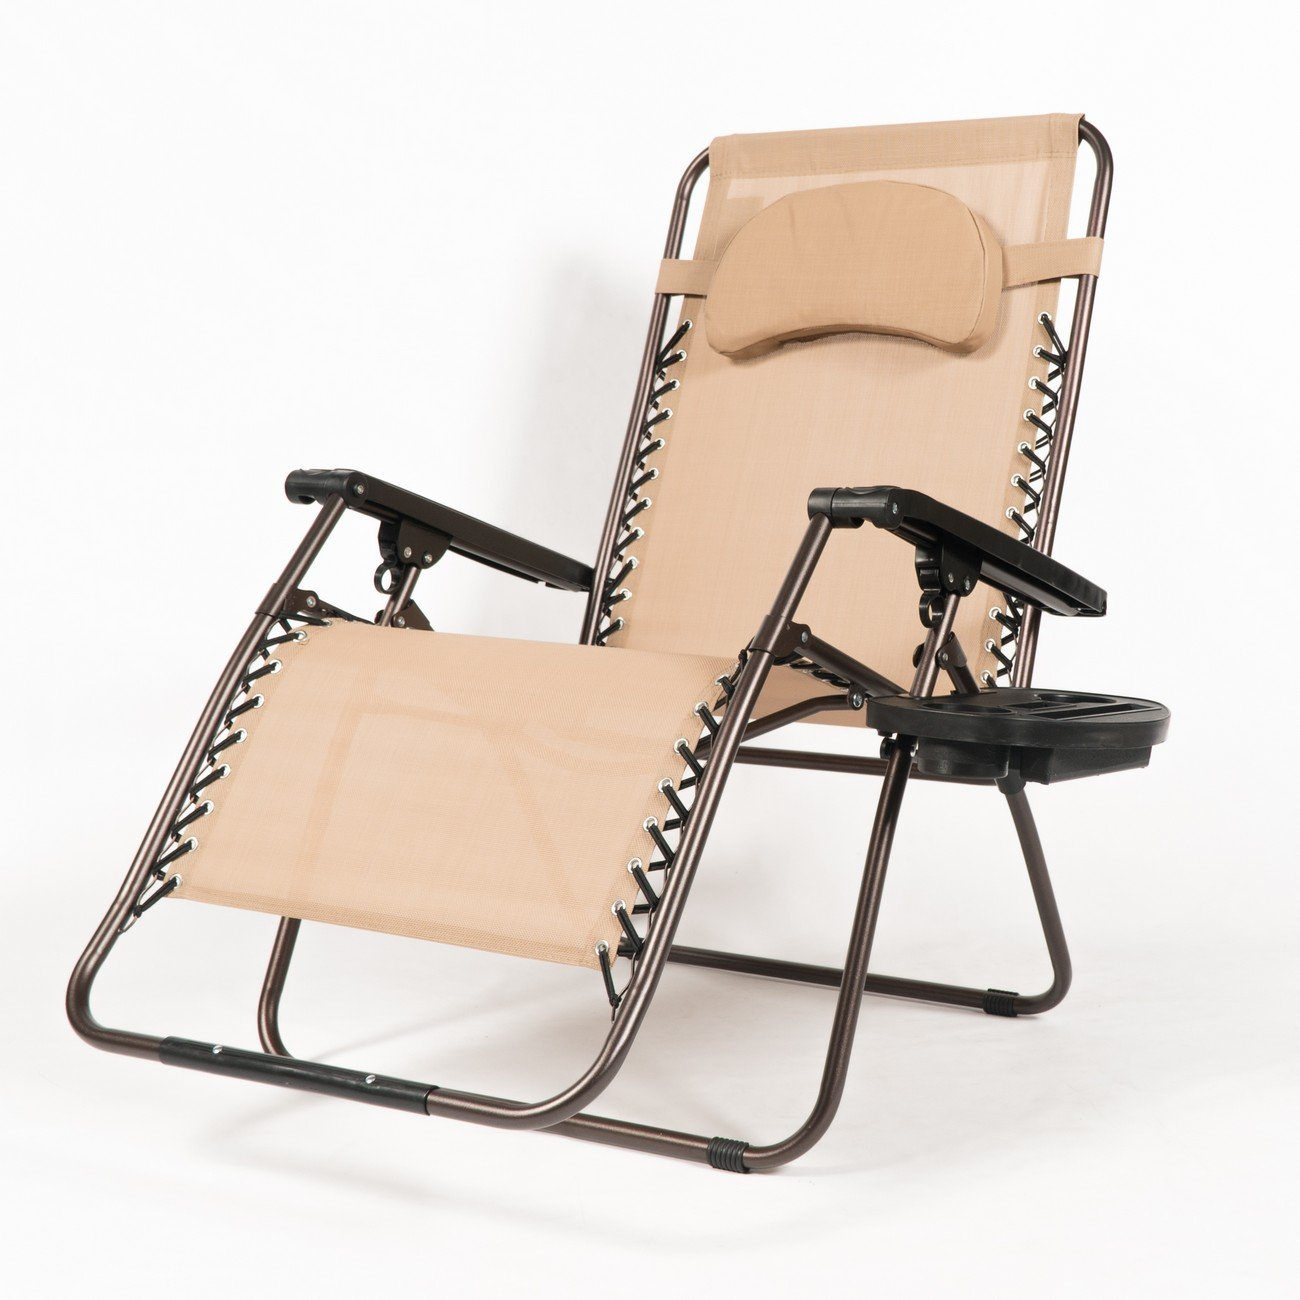 Amazon.com : Belleze Extra Large Oversized Zero Gravity Chair Recliner  Super Durable Reclining Patio Chair with Cup Holder, Beige : Garden &  Outdoor - Amazon.com : Belleze Extra Large Oversized Zero Gravity Chair